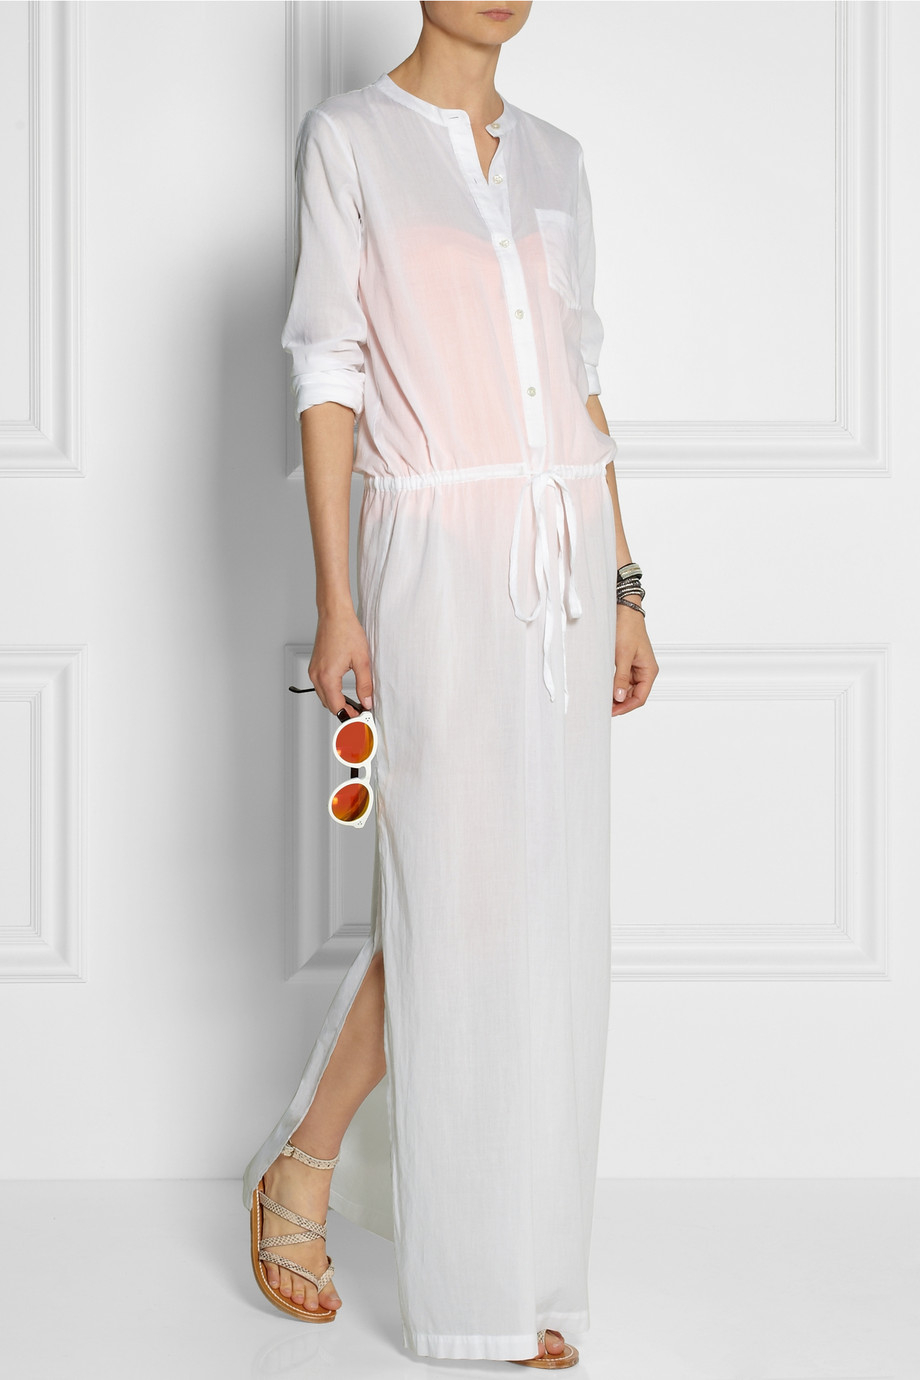 Free shipping and returns on Women's Cotton & Cotton Blend Dresses at sgmgqhay.gq